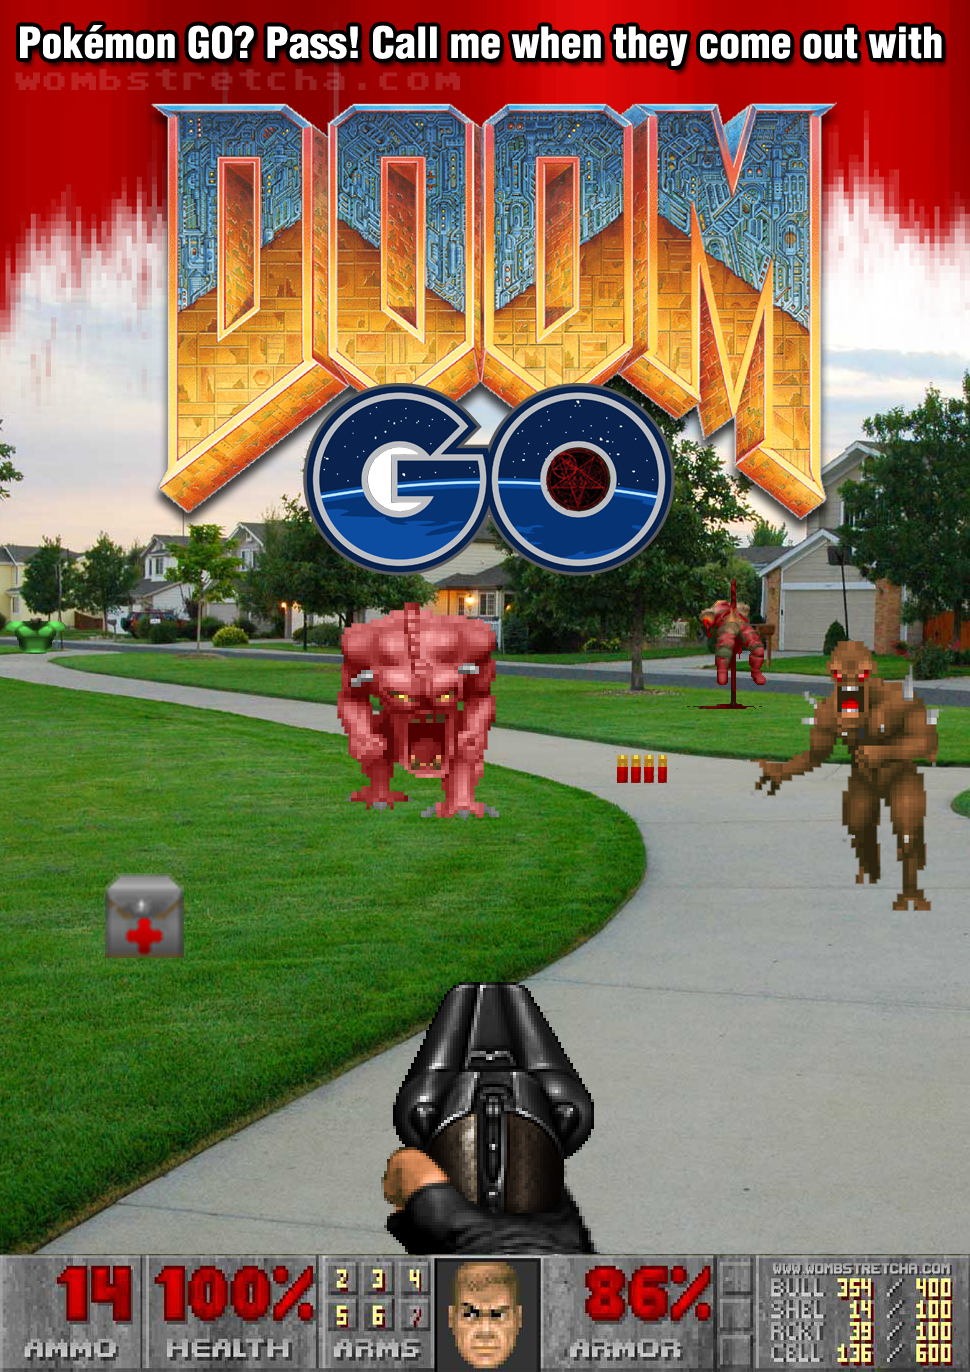 Pokémon Go? Hell no.